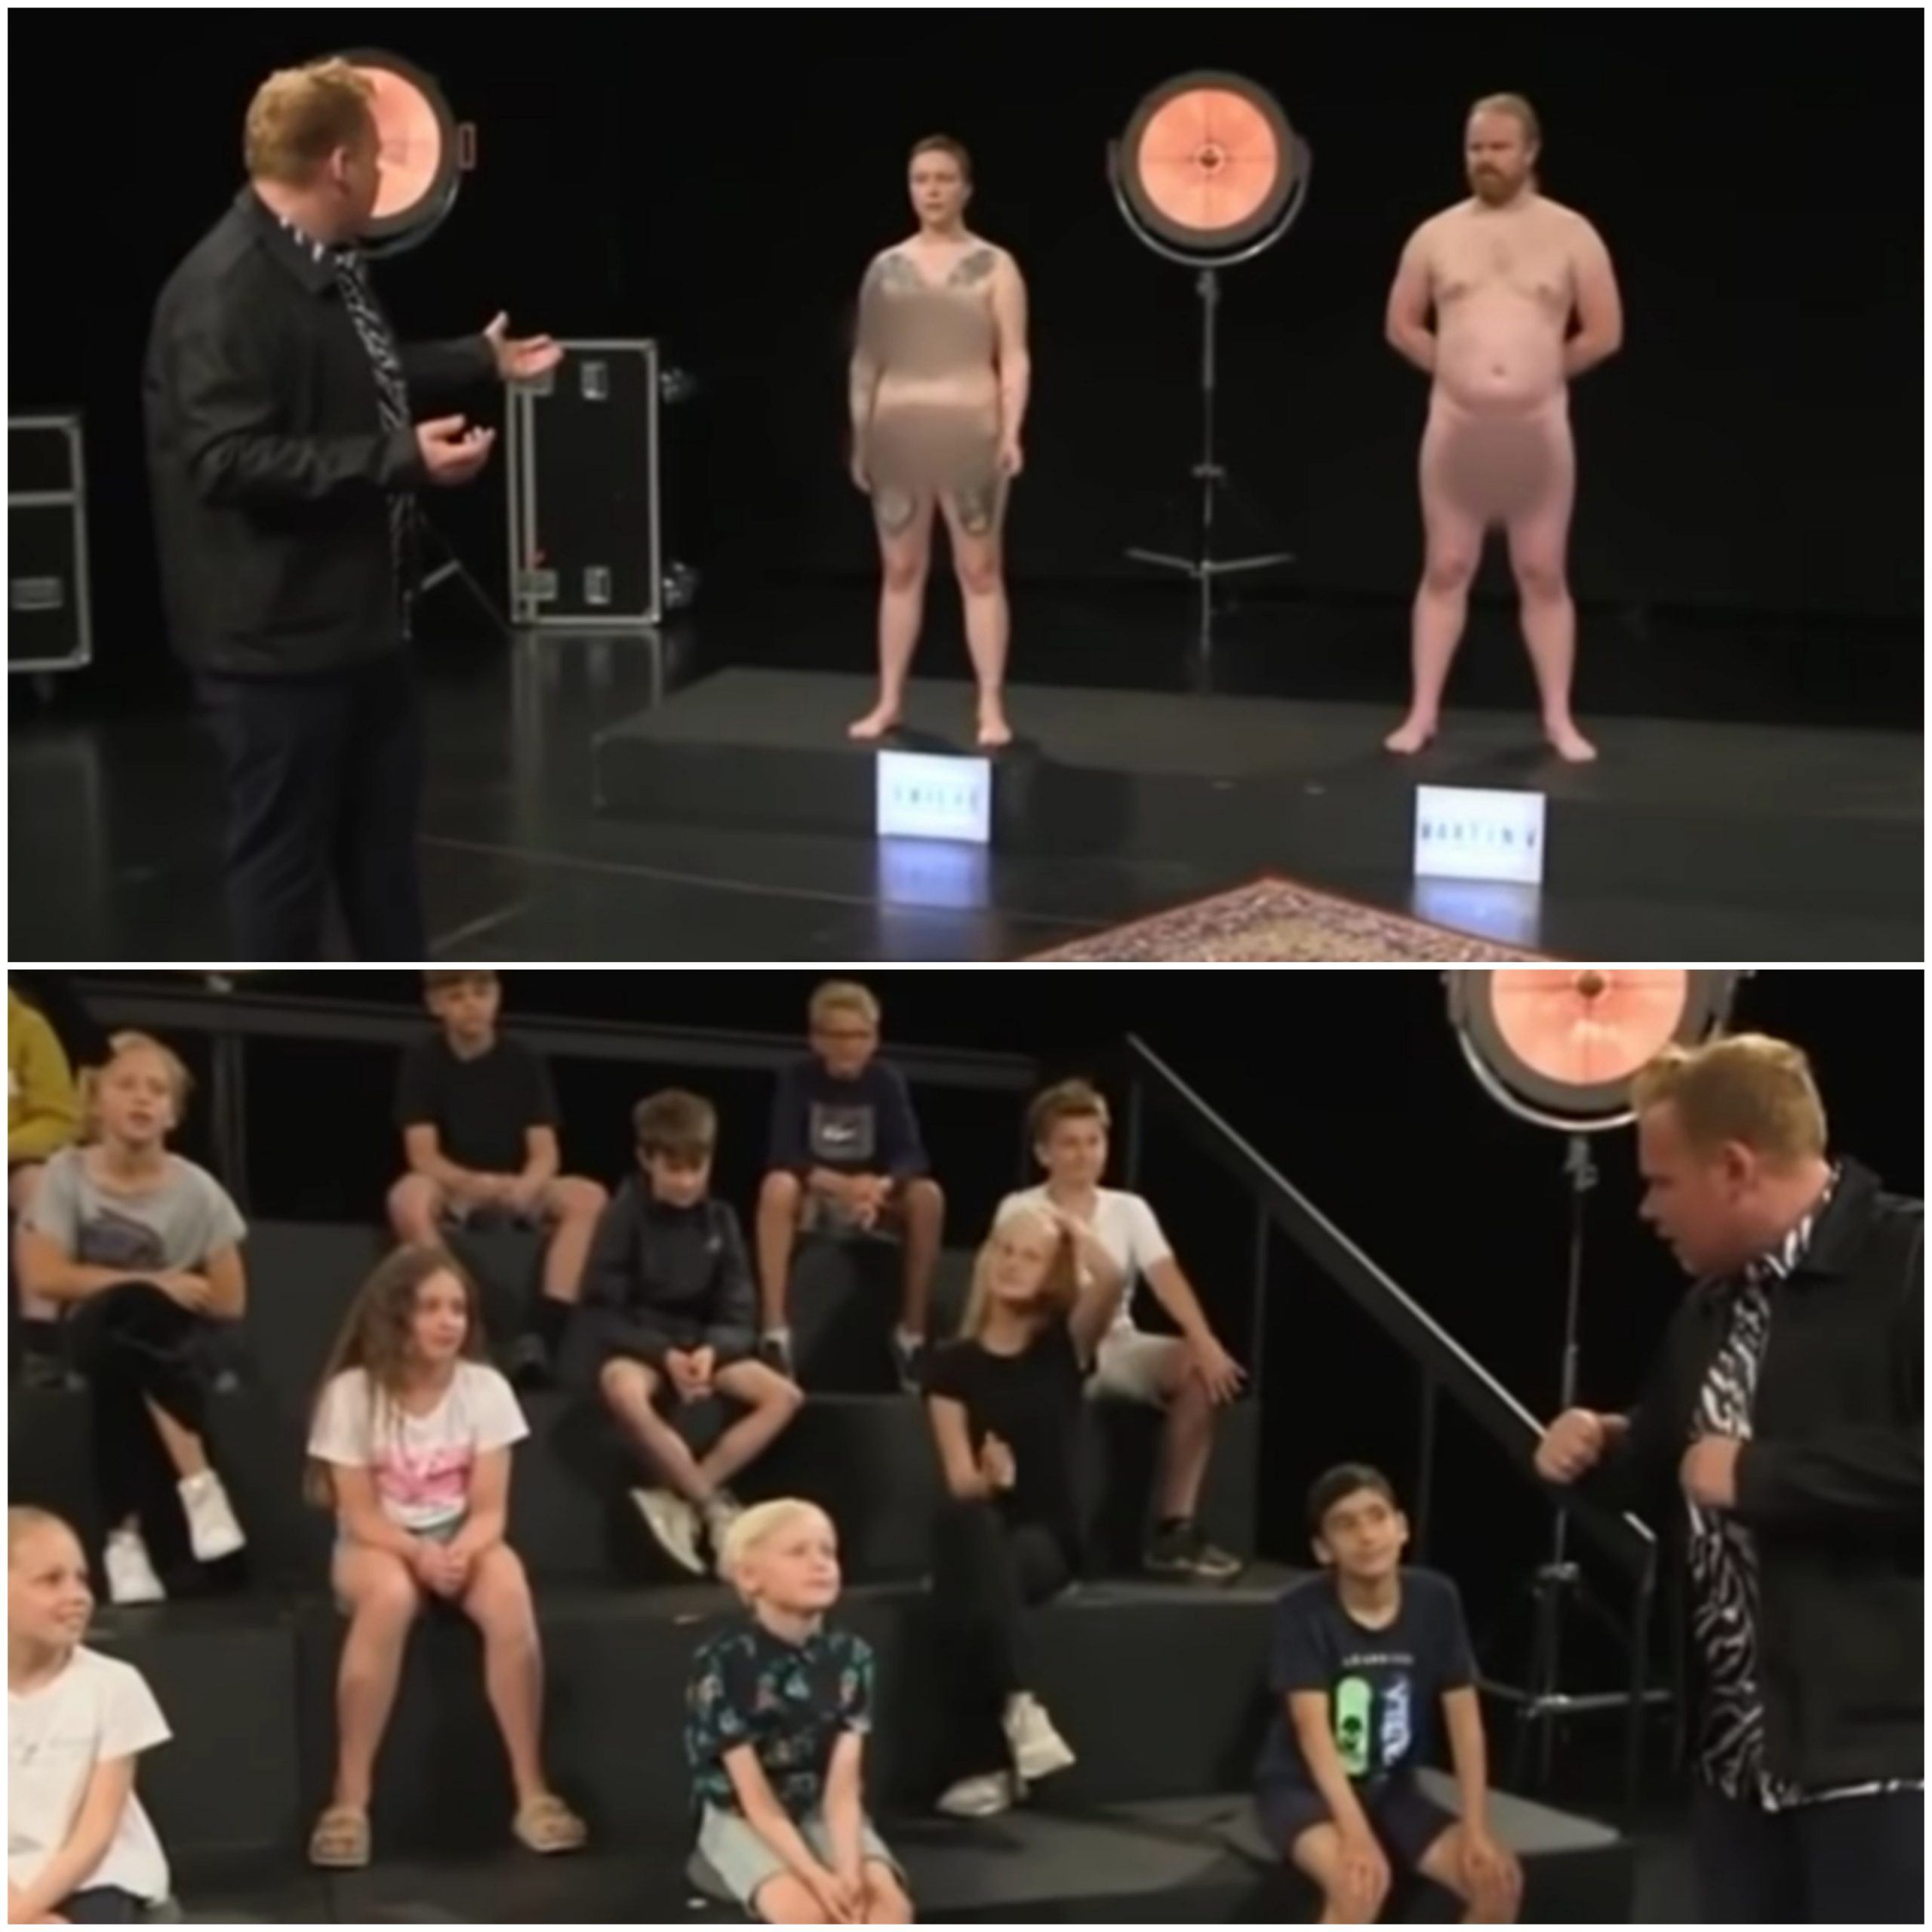 THIS TV Show Has Children WATCH Adults Strip Off Their Clothing